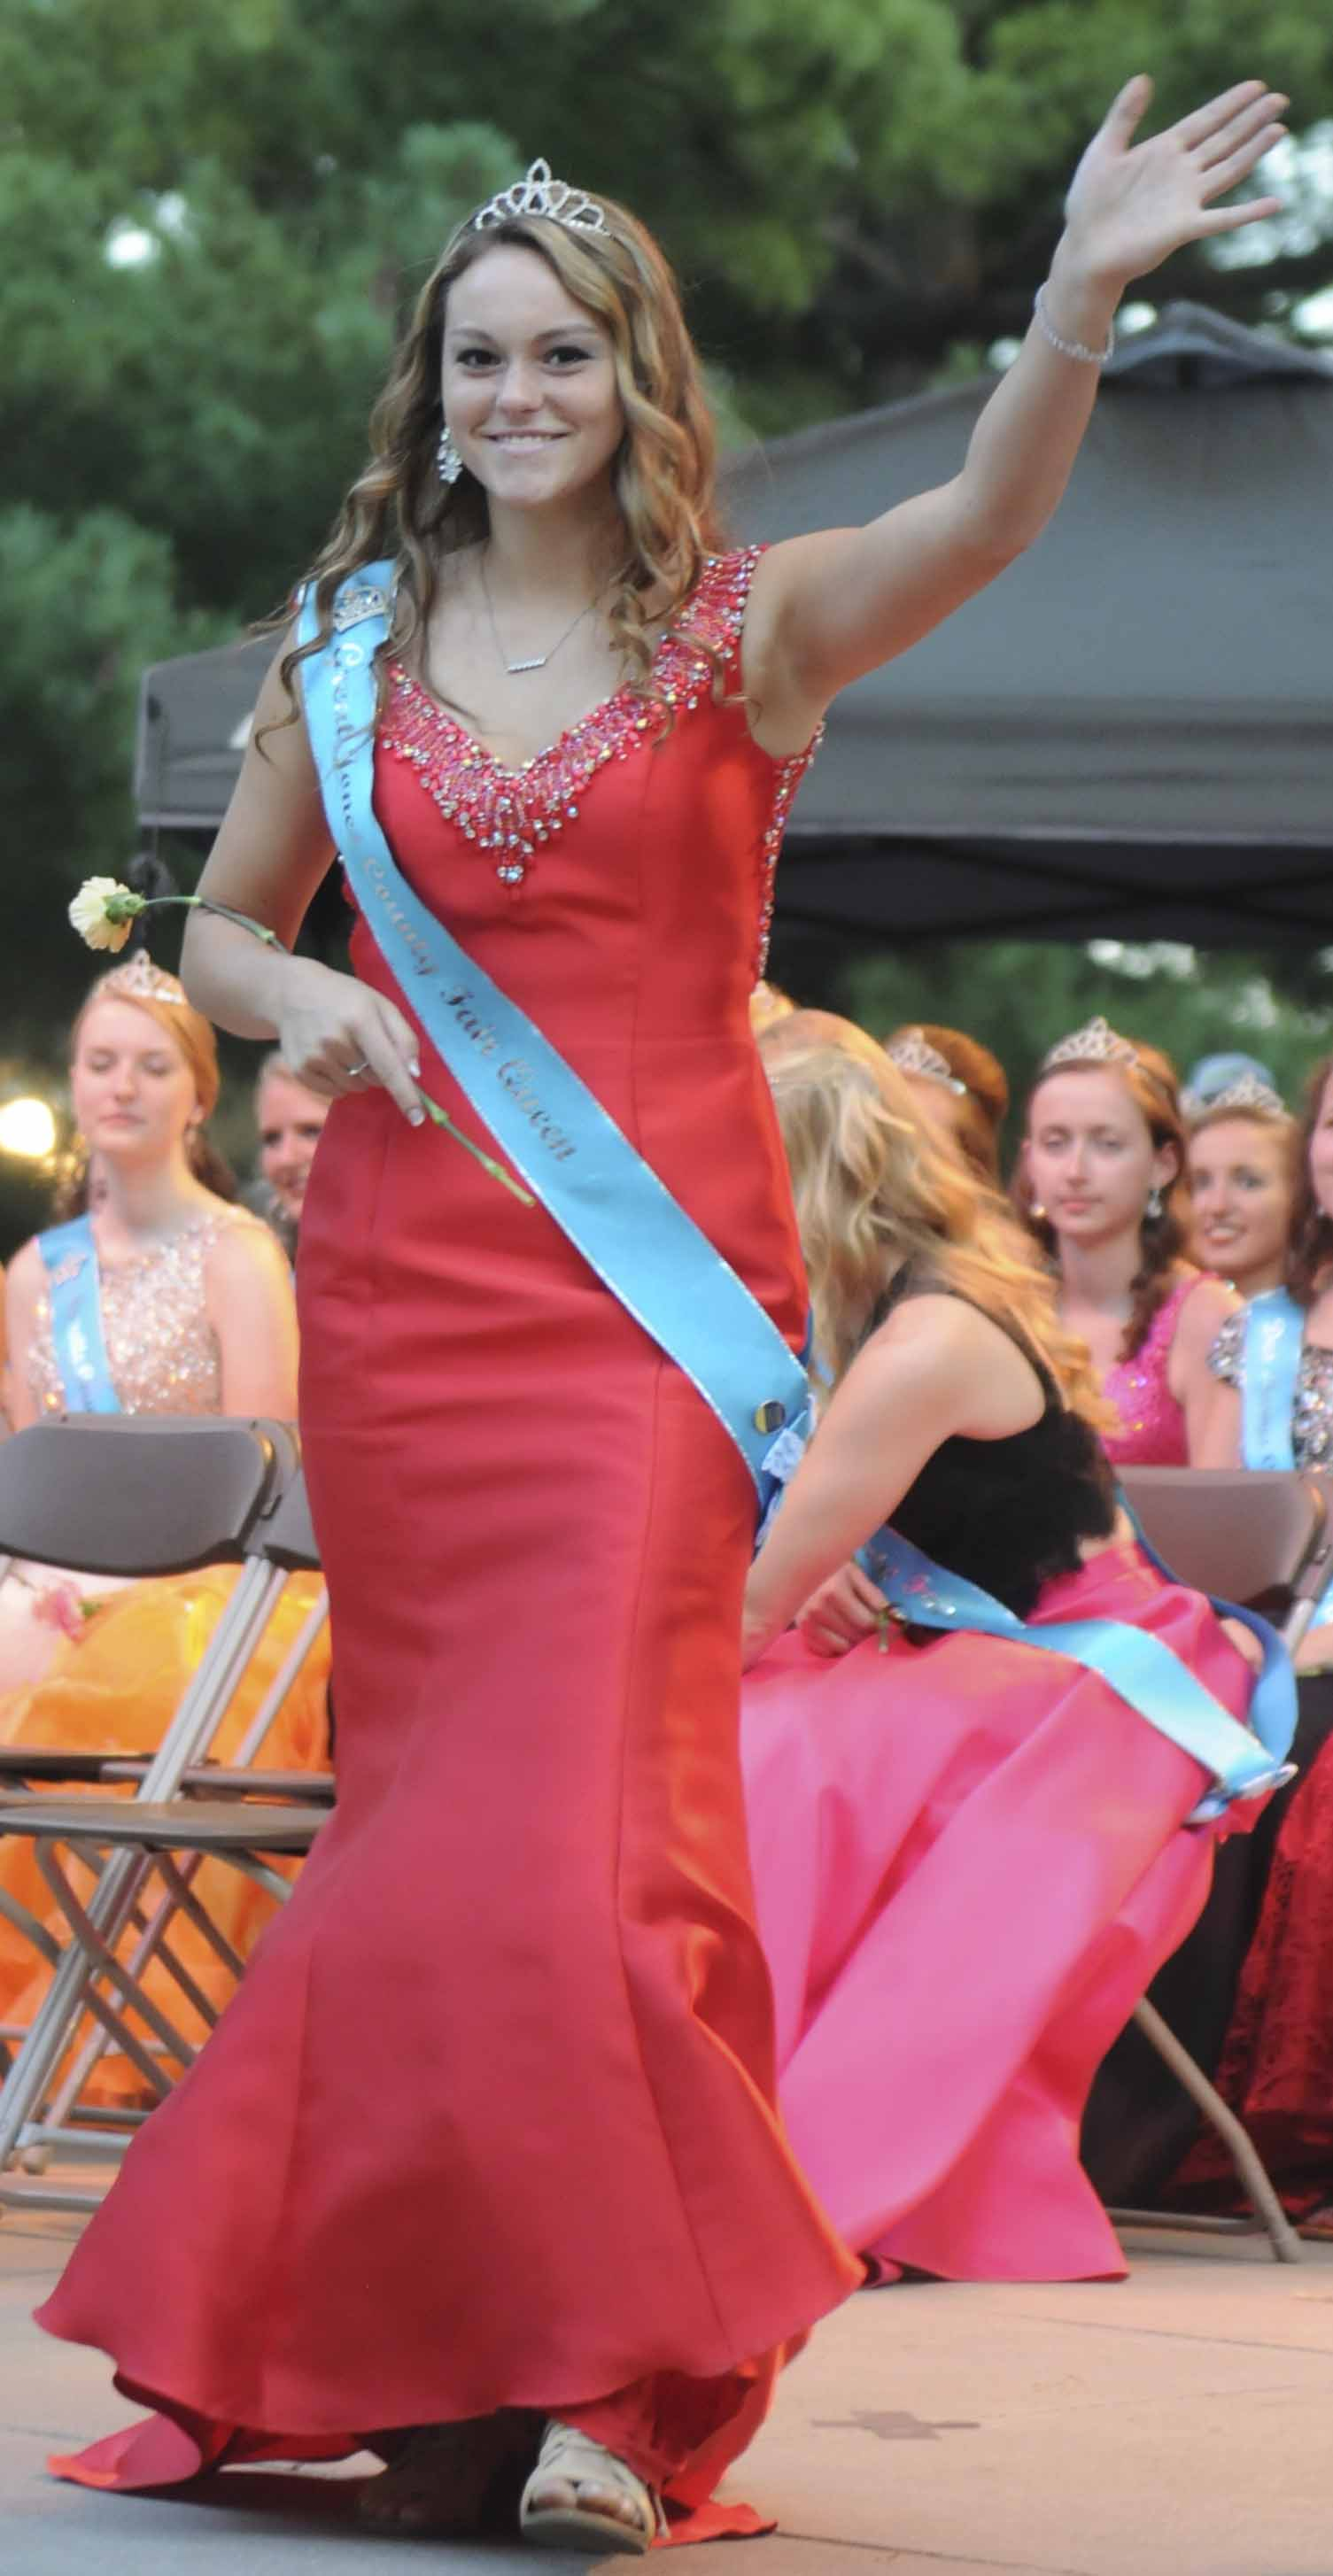 Great Jones County Fair Queen Shay Stephen, 18, of Monticello, participates in the 2017 Iowa State Fair Queen Coronation Ceremony on Aug. 12. (Iowa State Fair/ Steve Pope Photography)